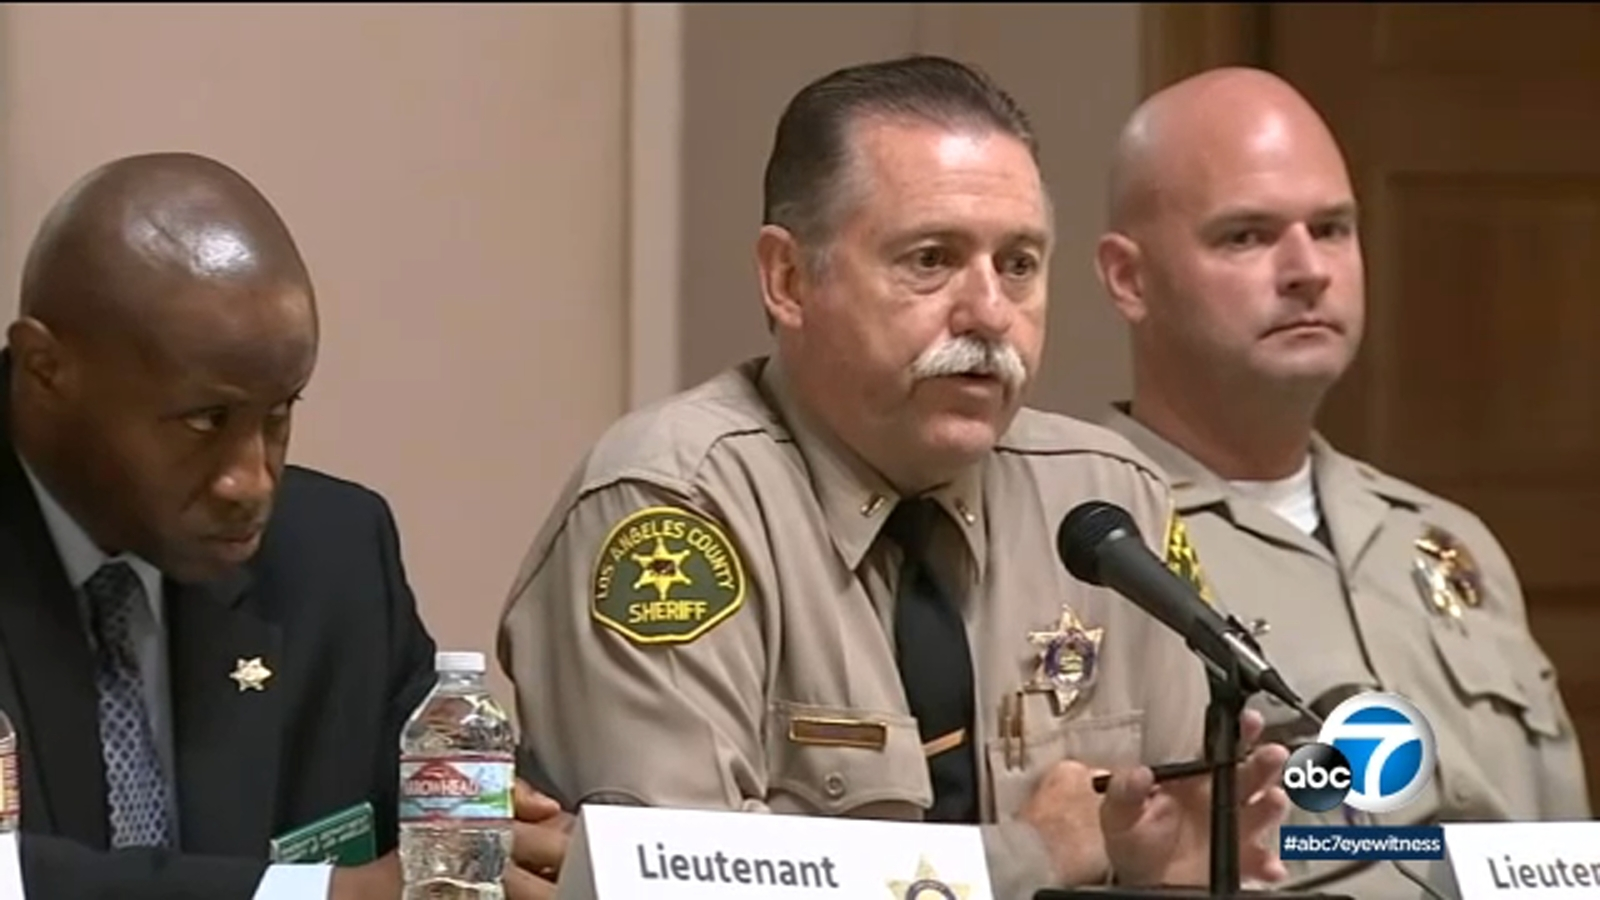 LASD lieutenant says he tried to warn about Malibu Creek State Park killer, sues department